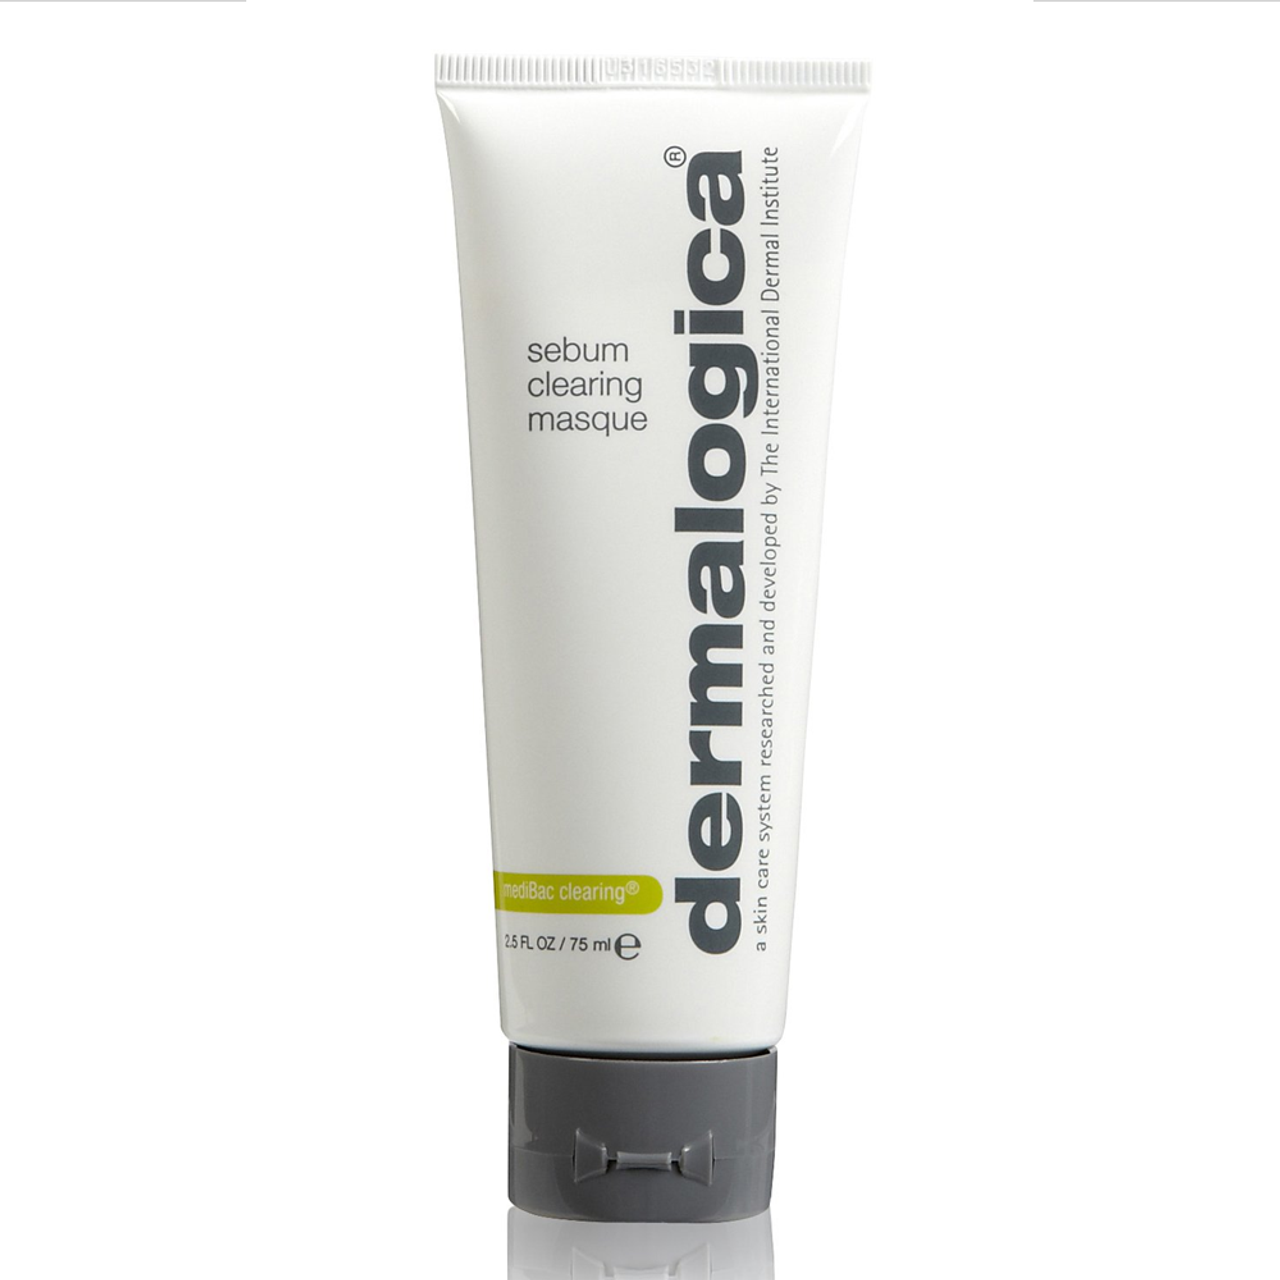 Dermalogica mediBac Sebum Clearing Masque (discontinued)